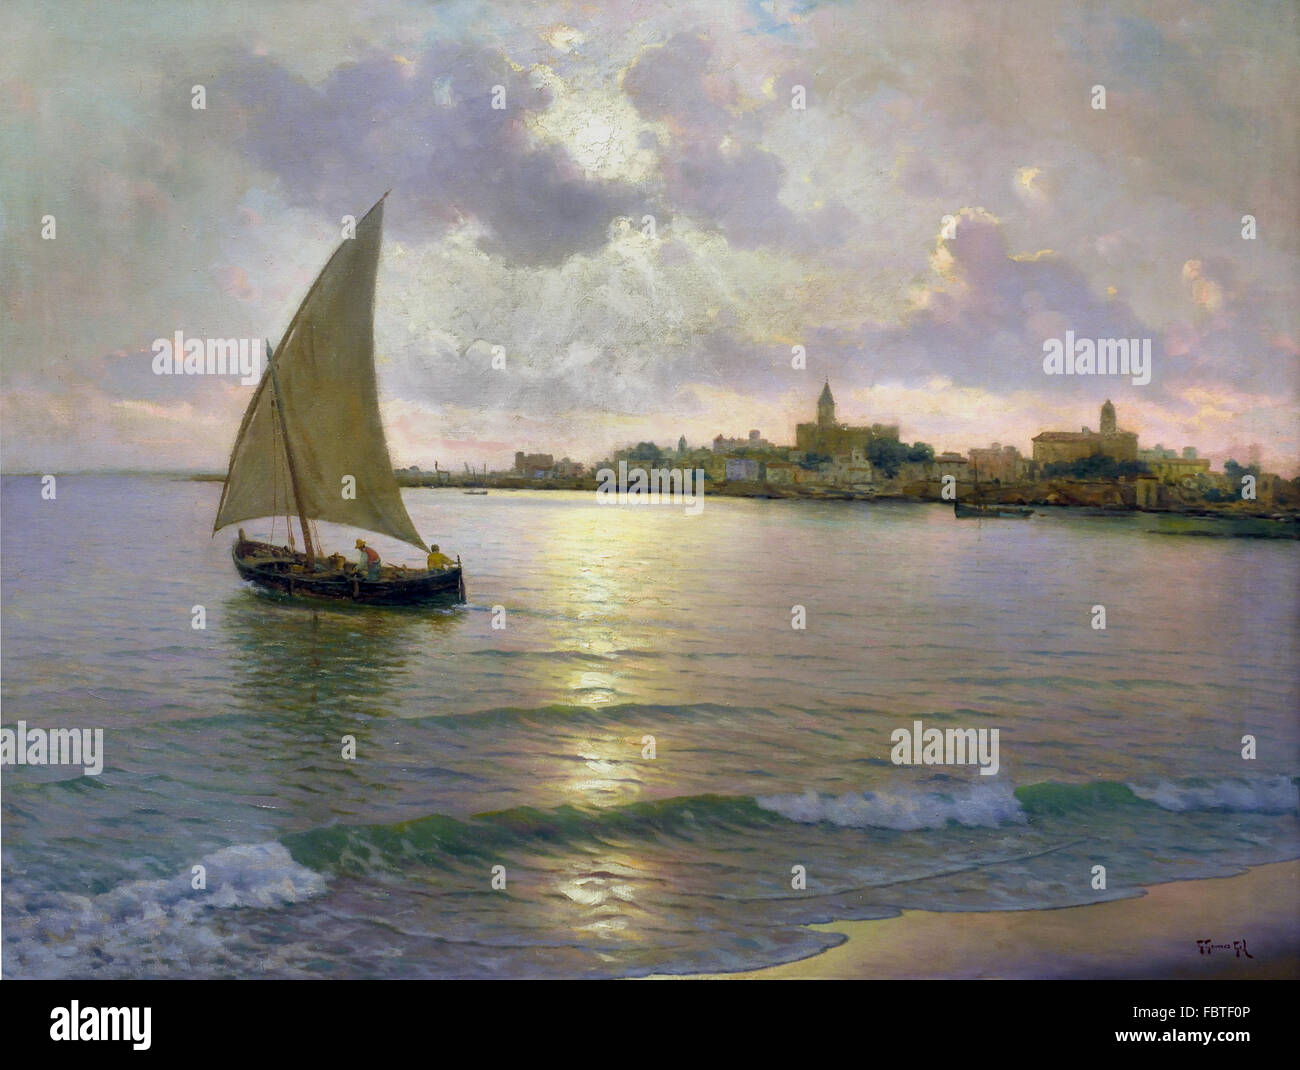 Seascape by Guillermo Gómez Gil 1862 - 1946 Andalusia Spanish Spain - Stock Image